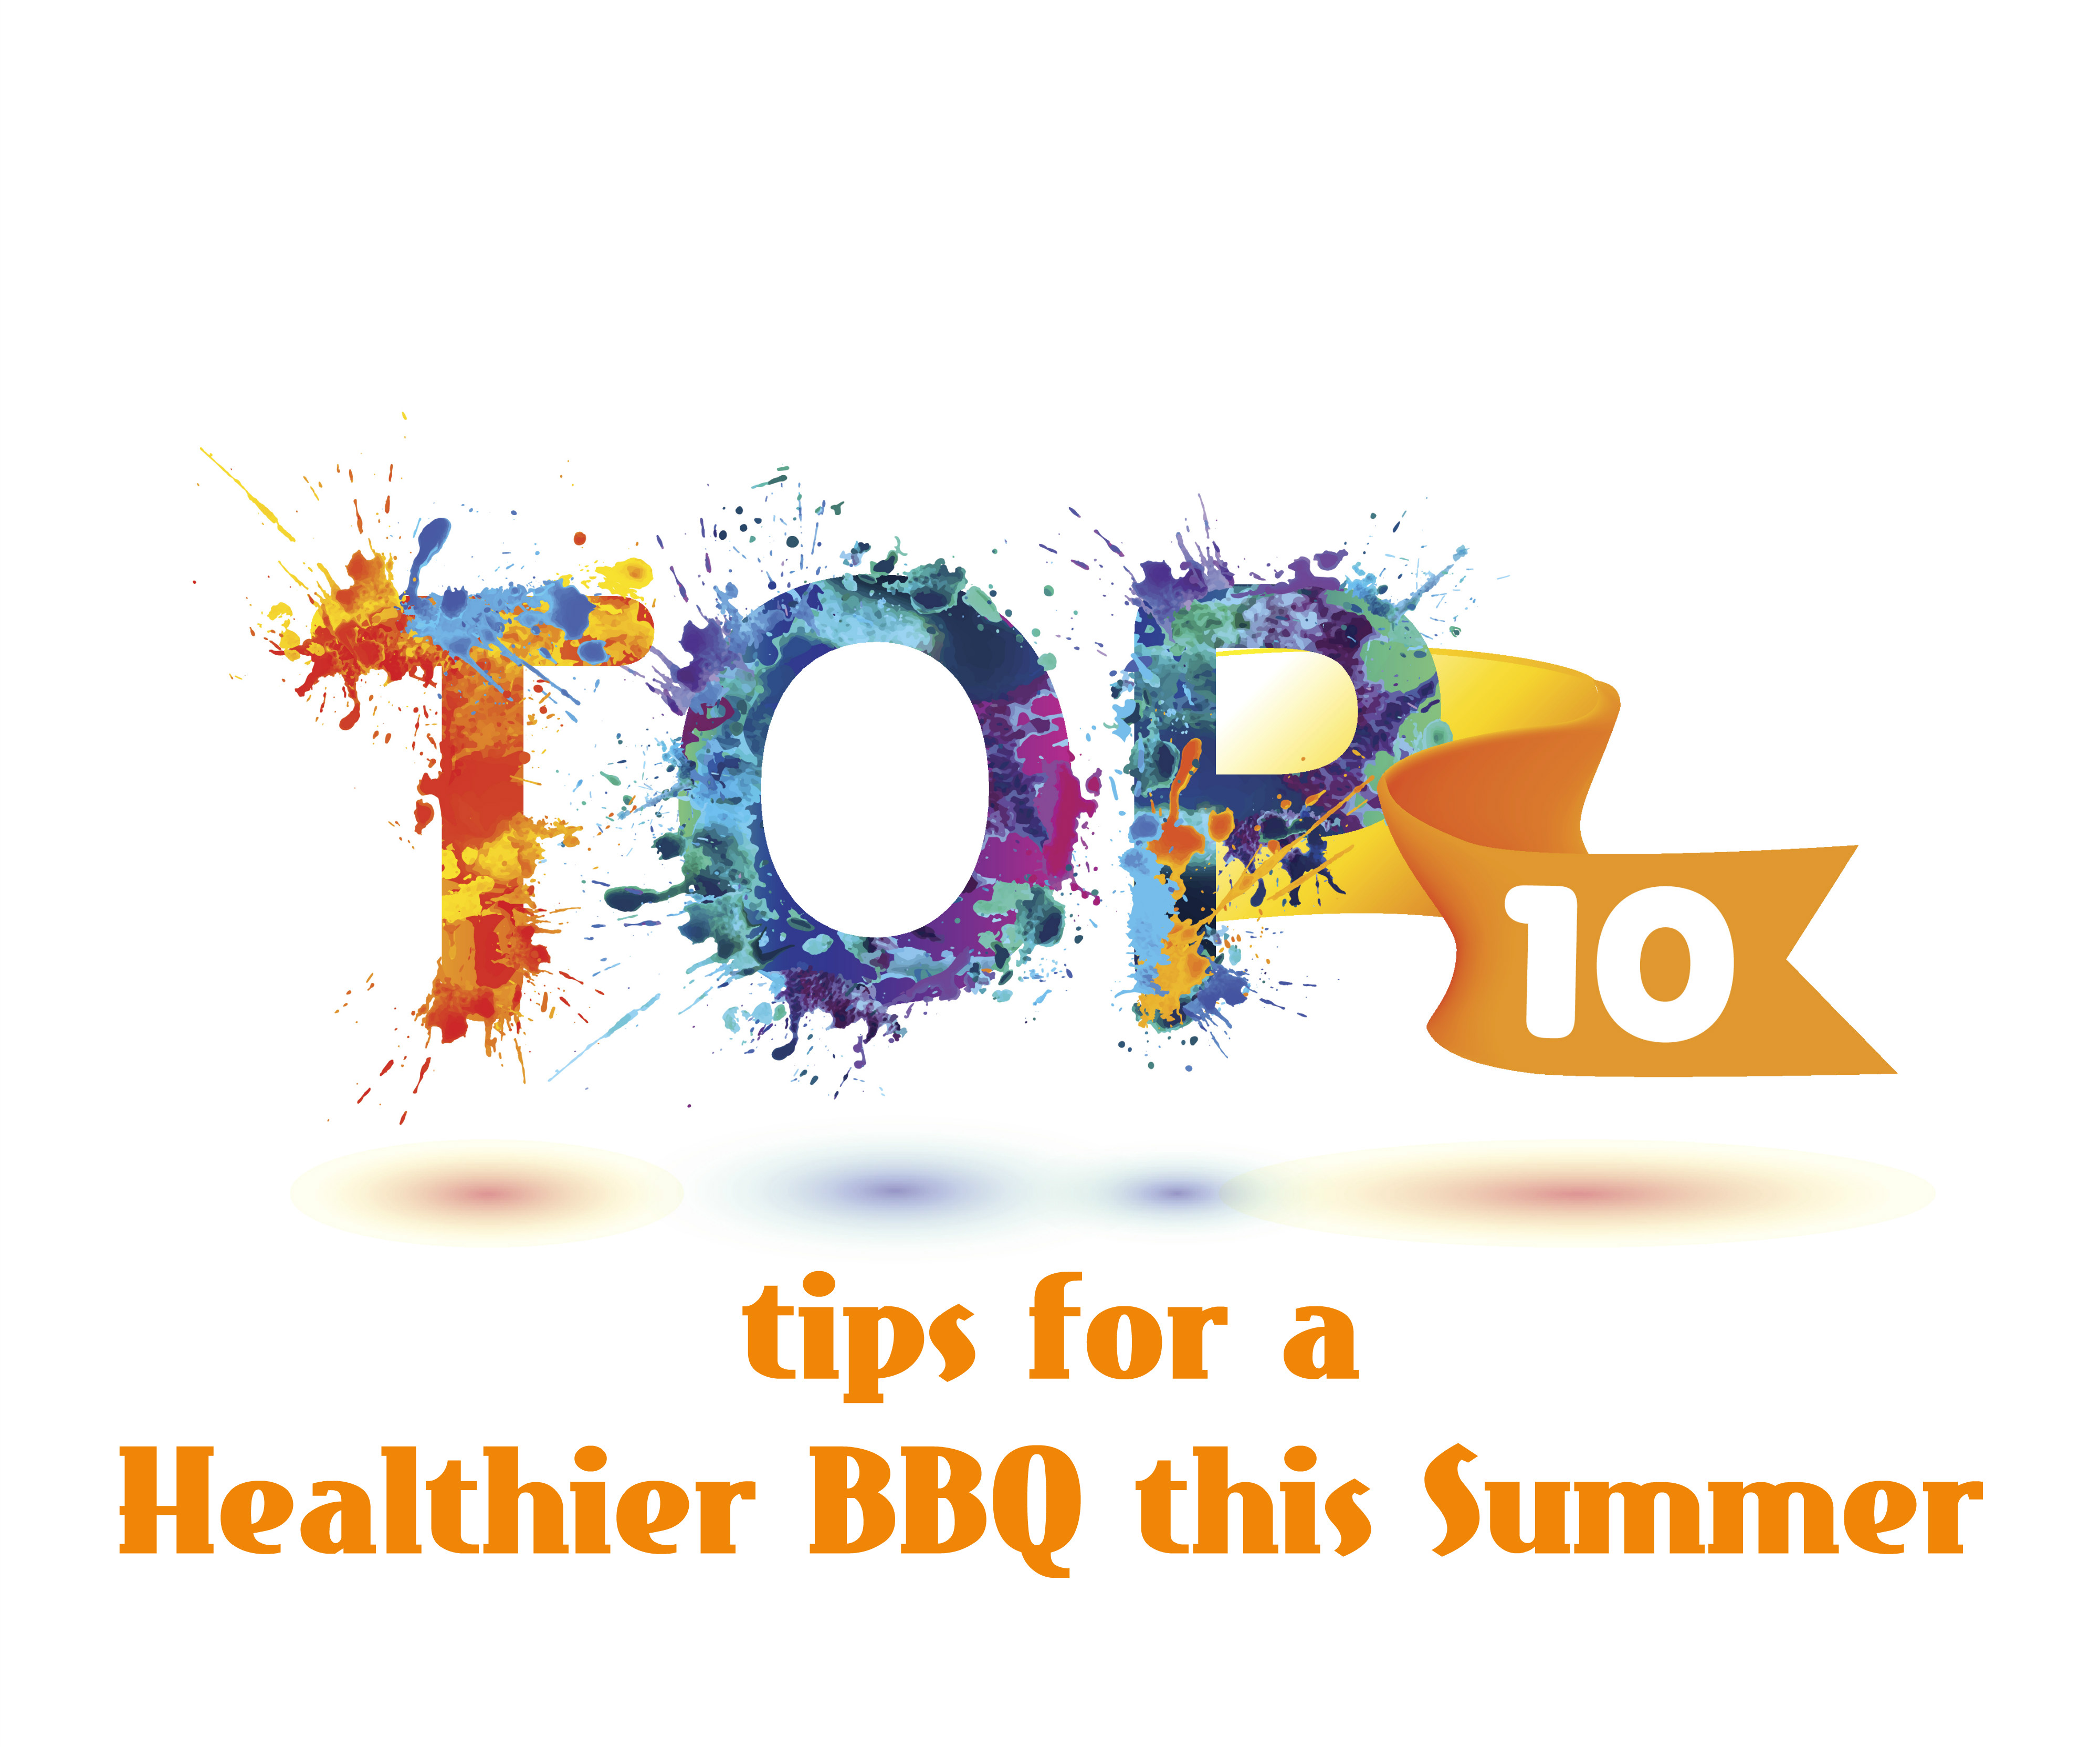 Top Ten Tips for a Healthier BBQ this Summer